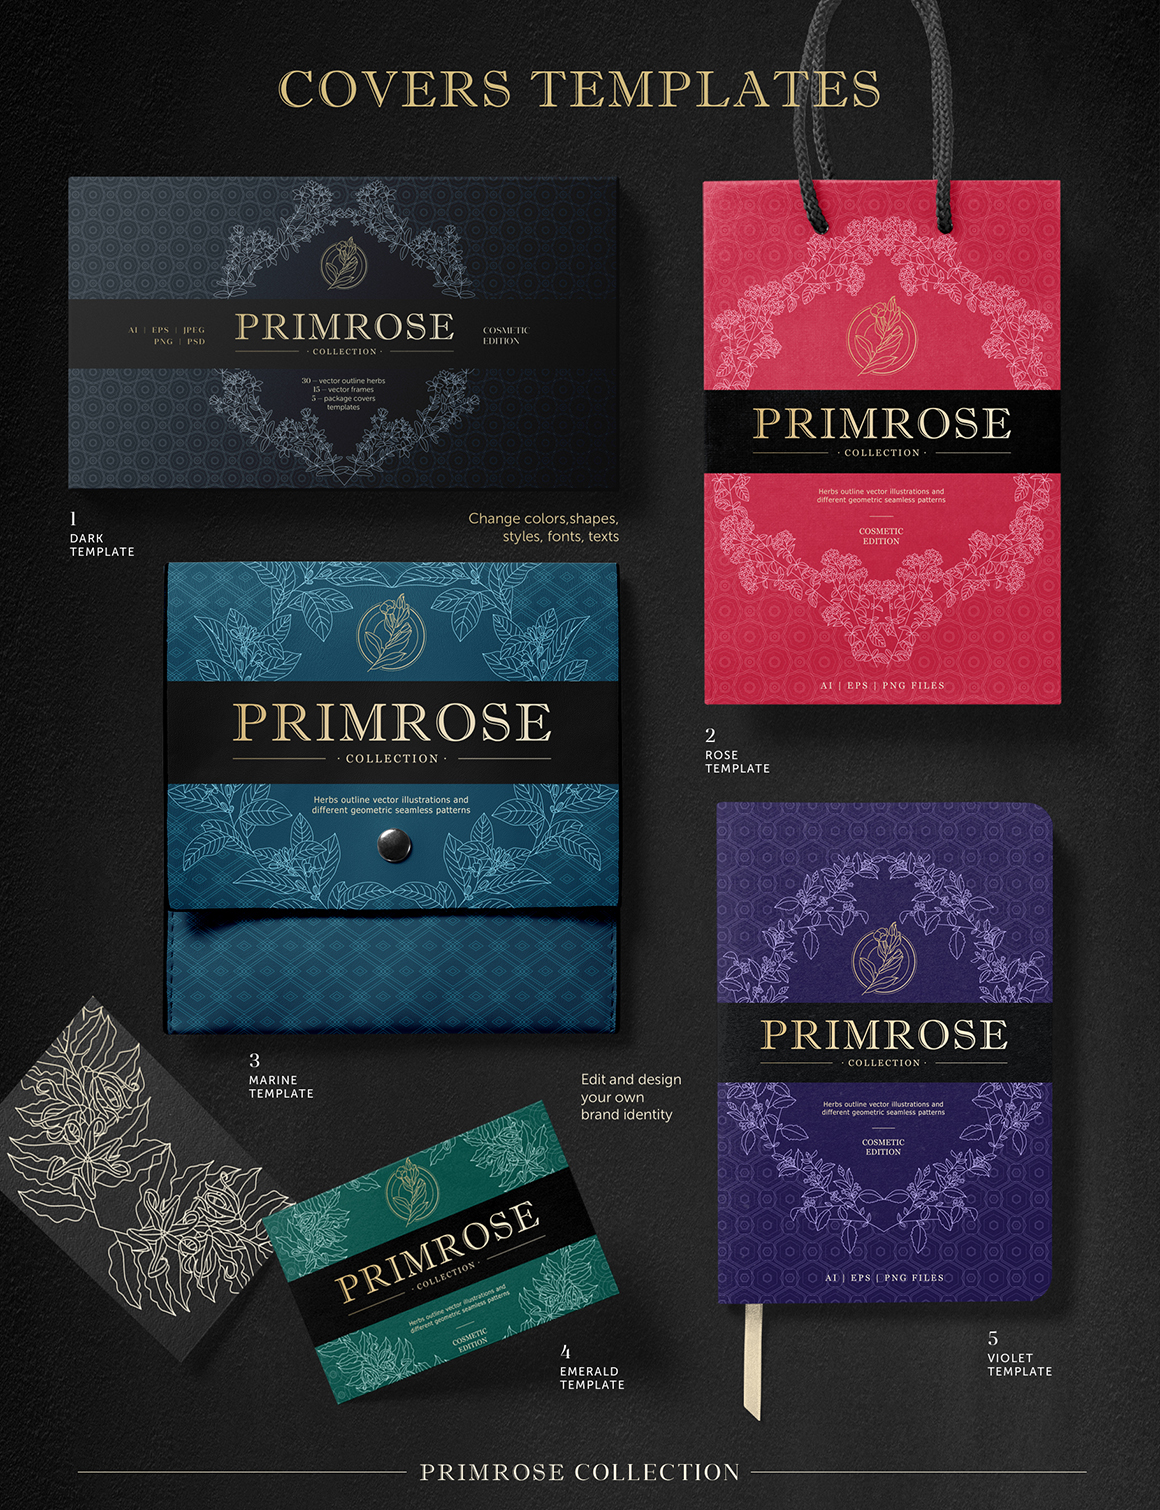 PRIMROSE - Vectors Collection